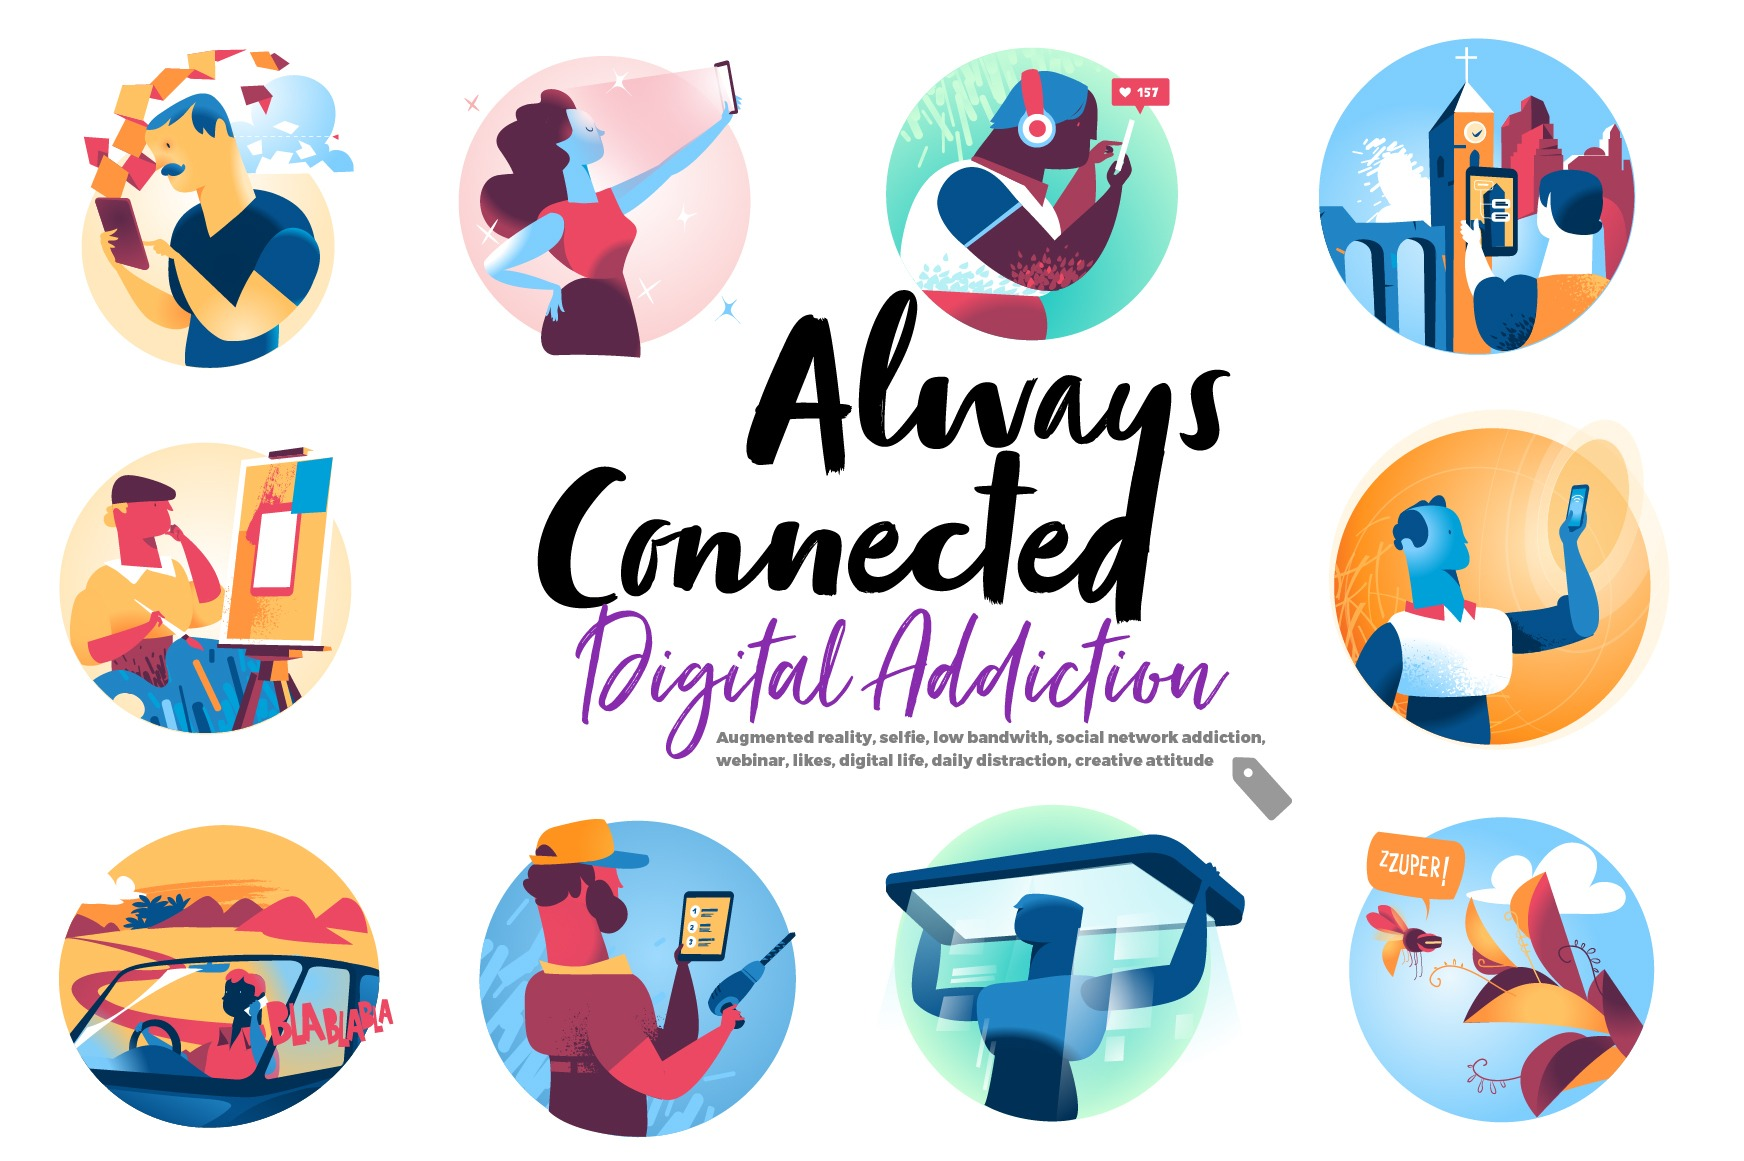 Always Digital Connected